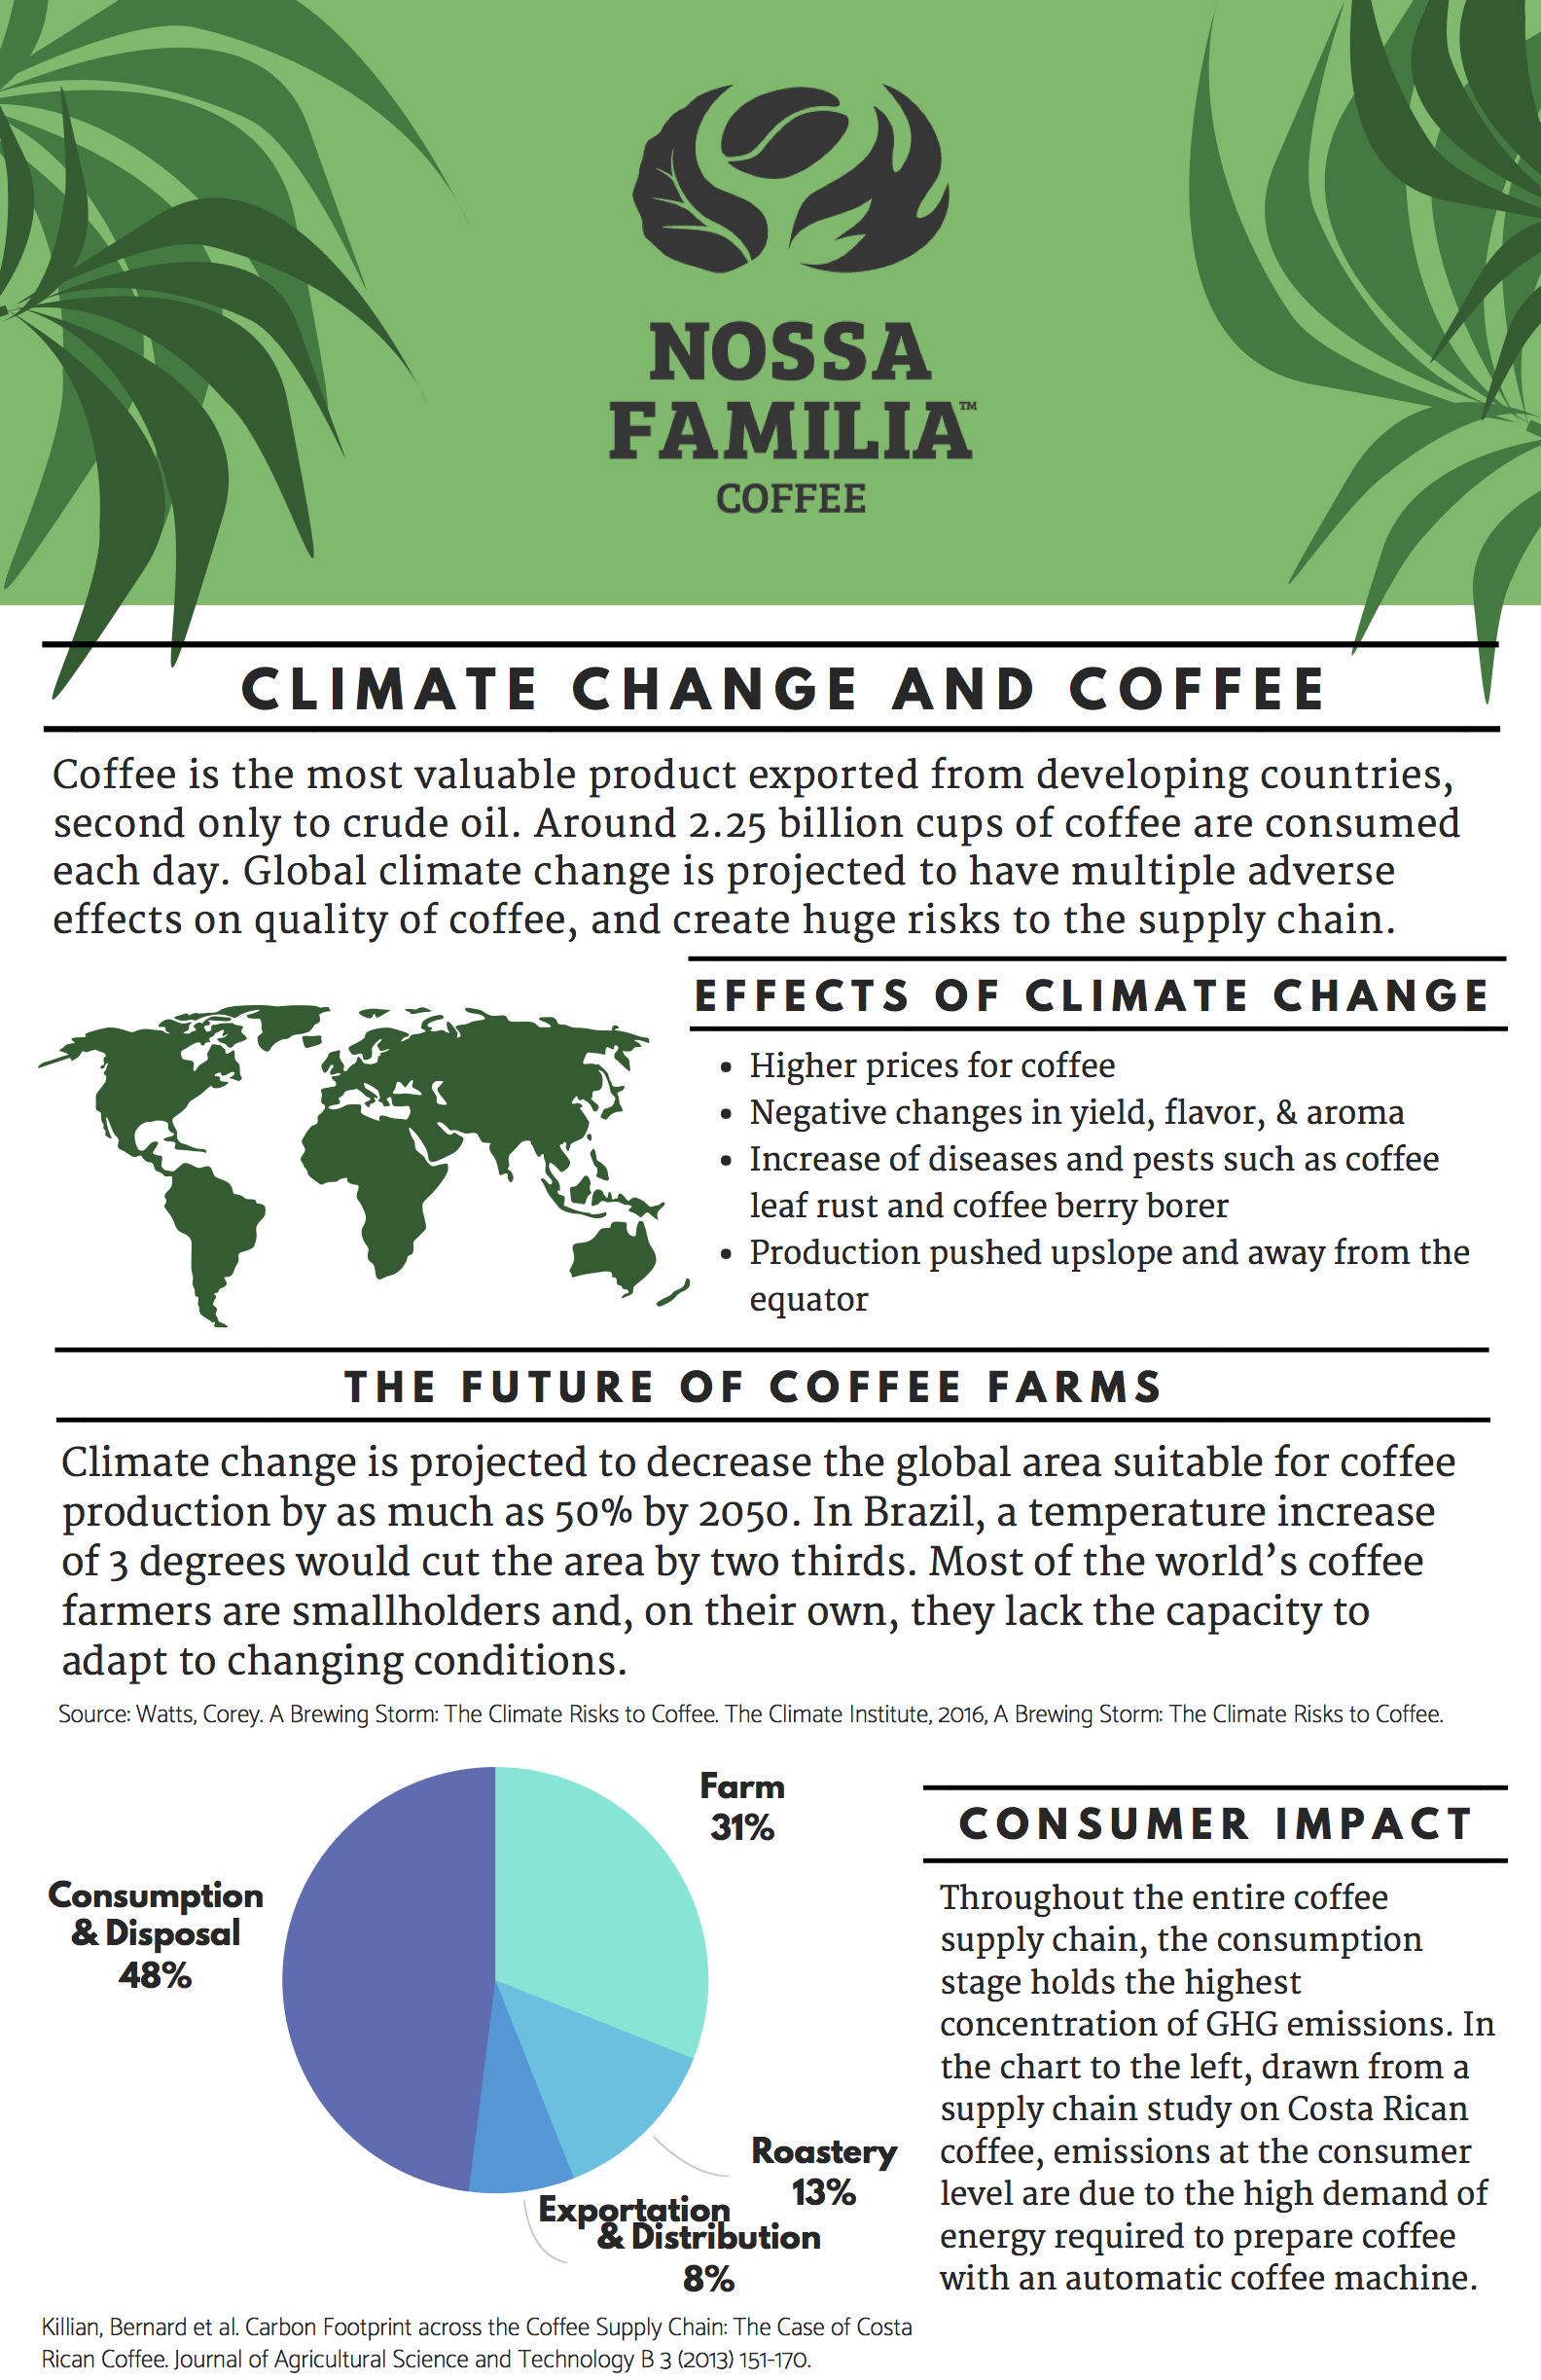 Nossa Familia Coffee Sustainability Poster Series - Poster #1: Climate Change & Coffee